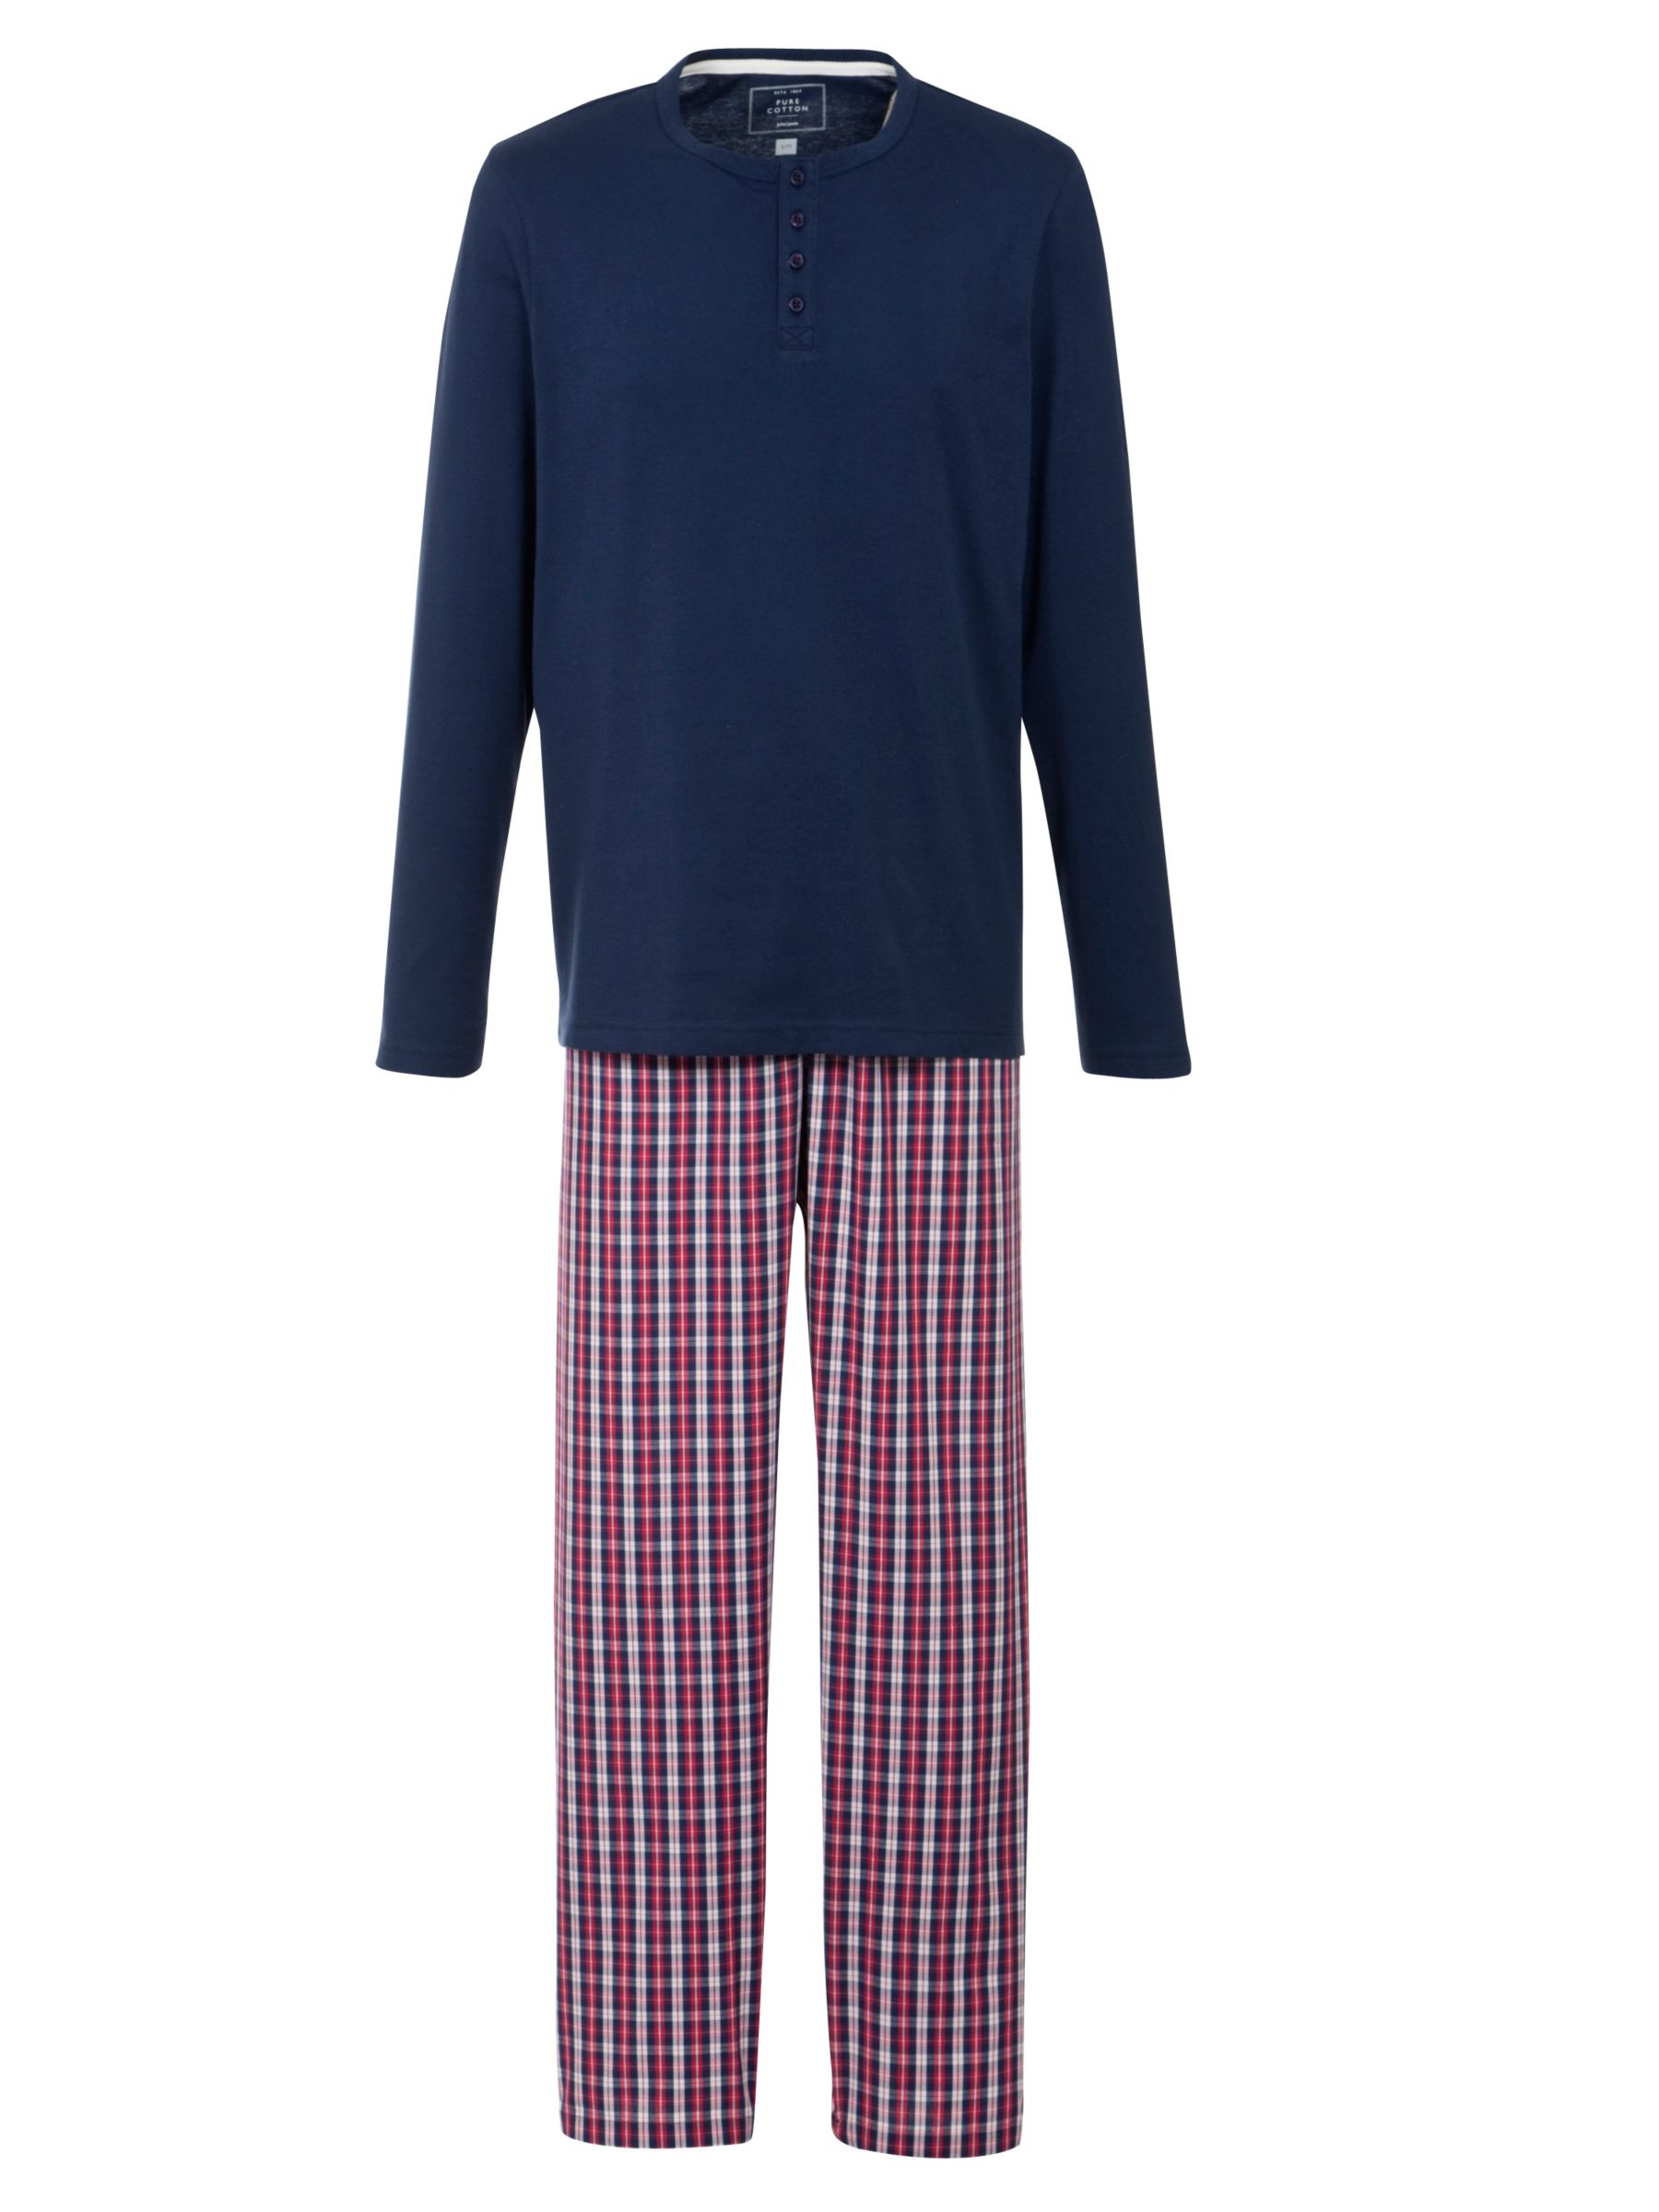 John Lewis Long Sleeve T-Shirt and Check Lounge Pants